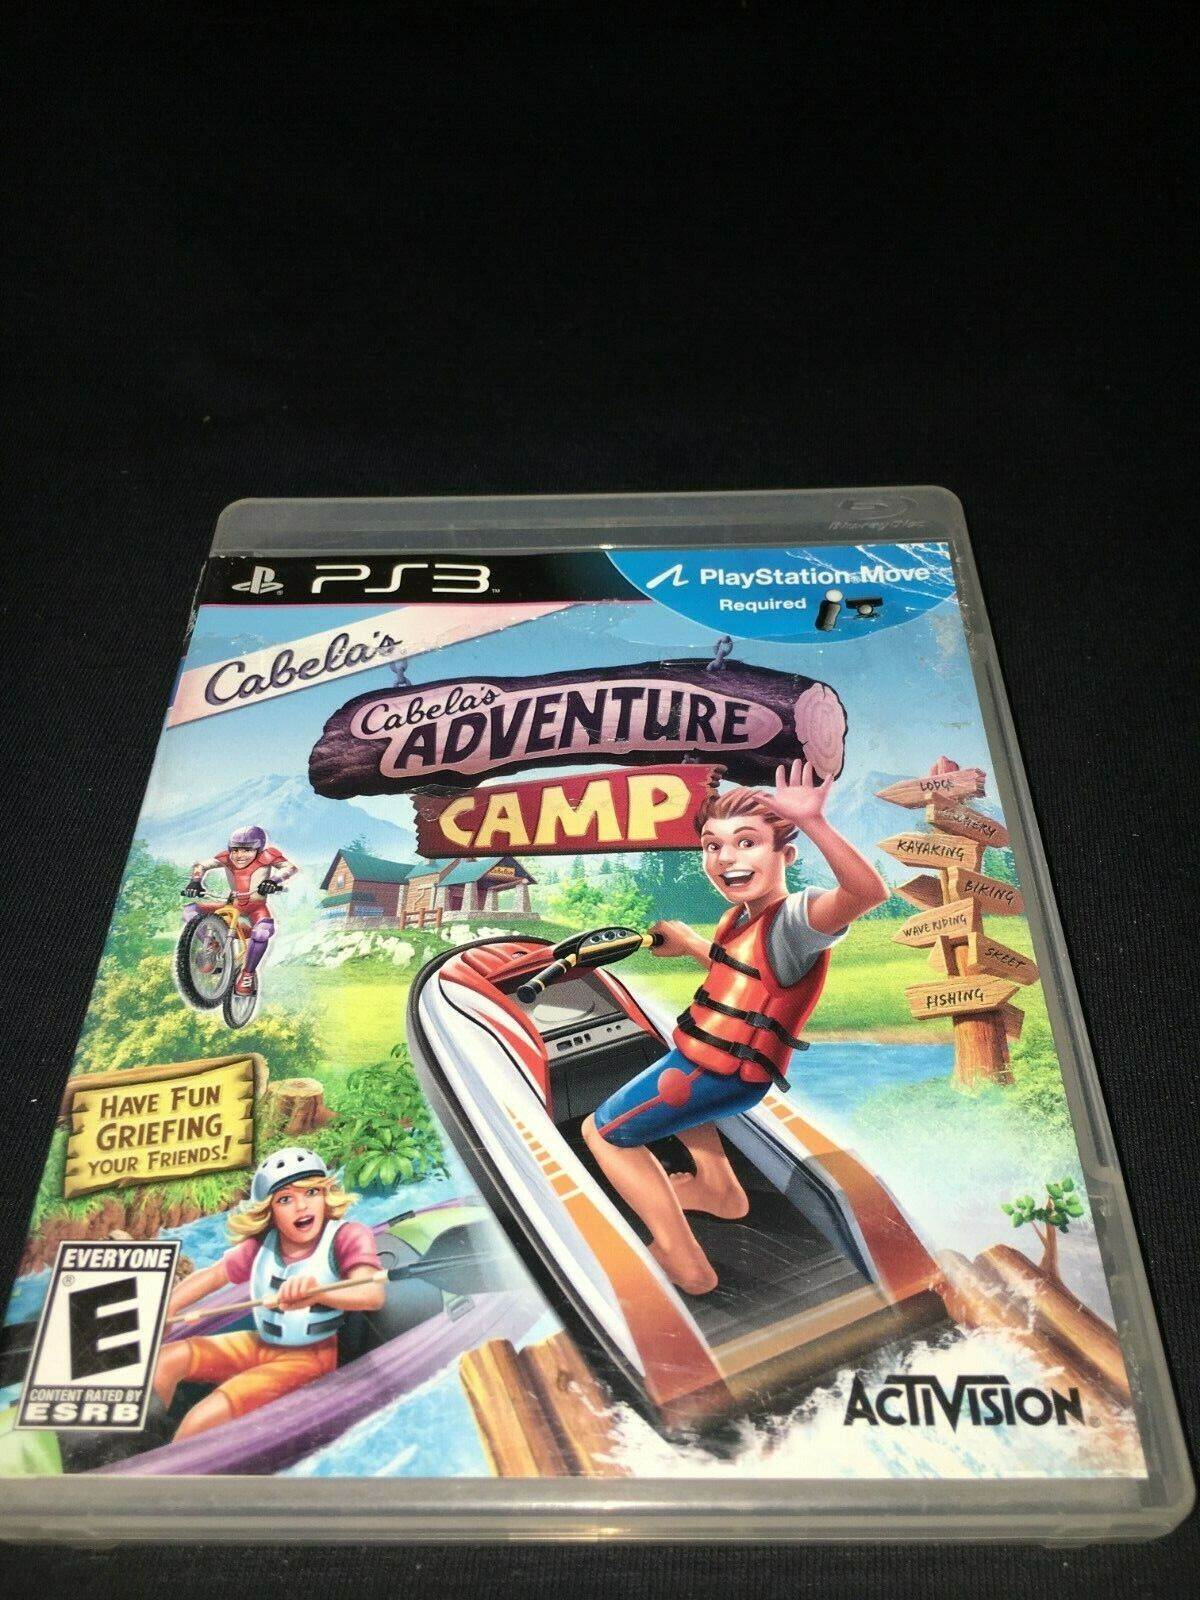 Cabela s Adventure Camp Sony PlayStation 3, 2011  - $7.99